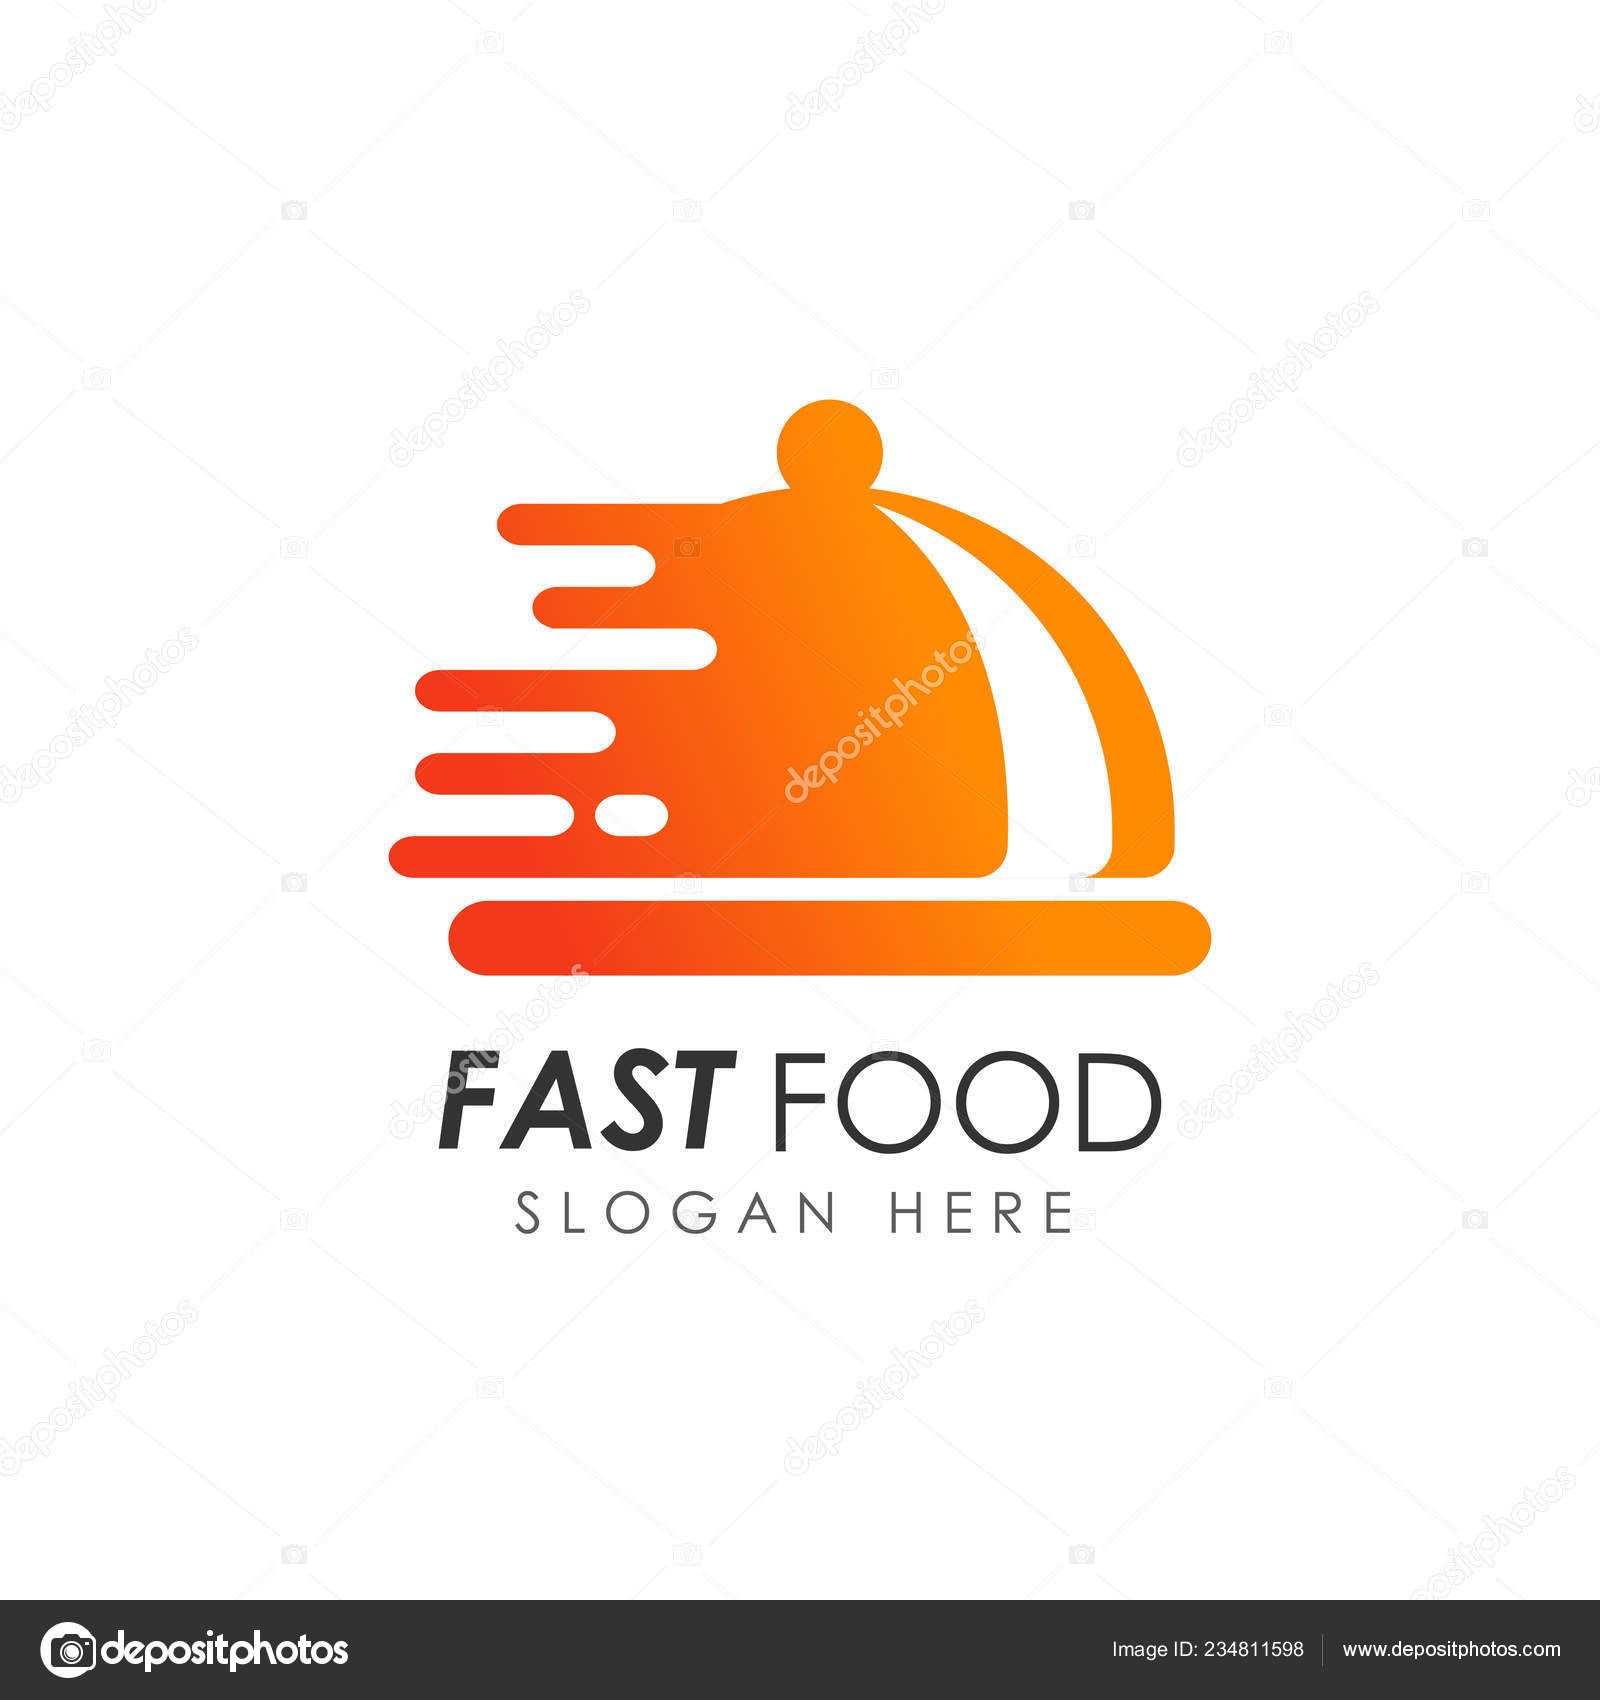 Fast Food Logo Design Food Delivery Logo Stock Vector C Distrologo 234811598